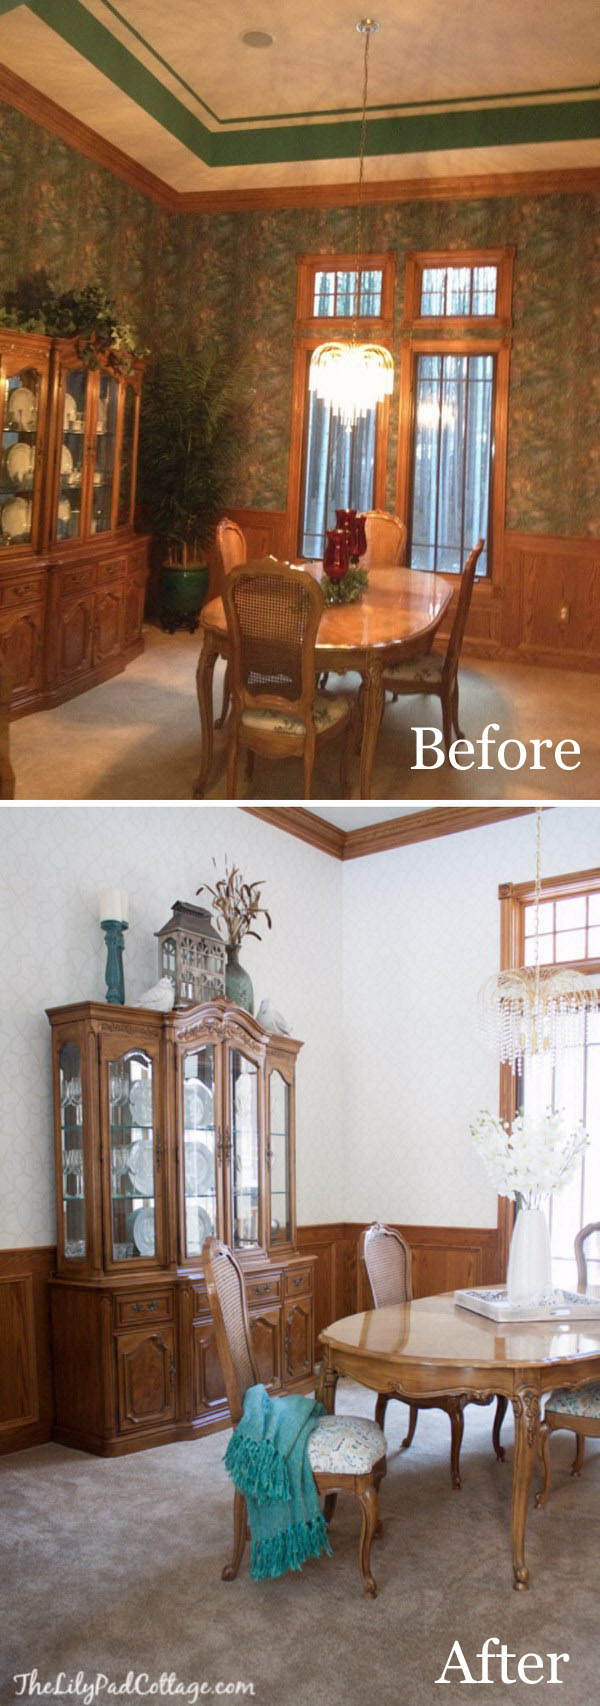 Great Transformation with Just Changing Out The Dark Wall Paper.